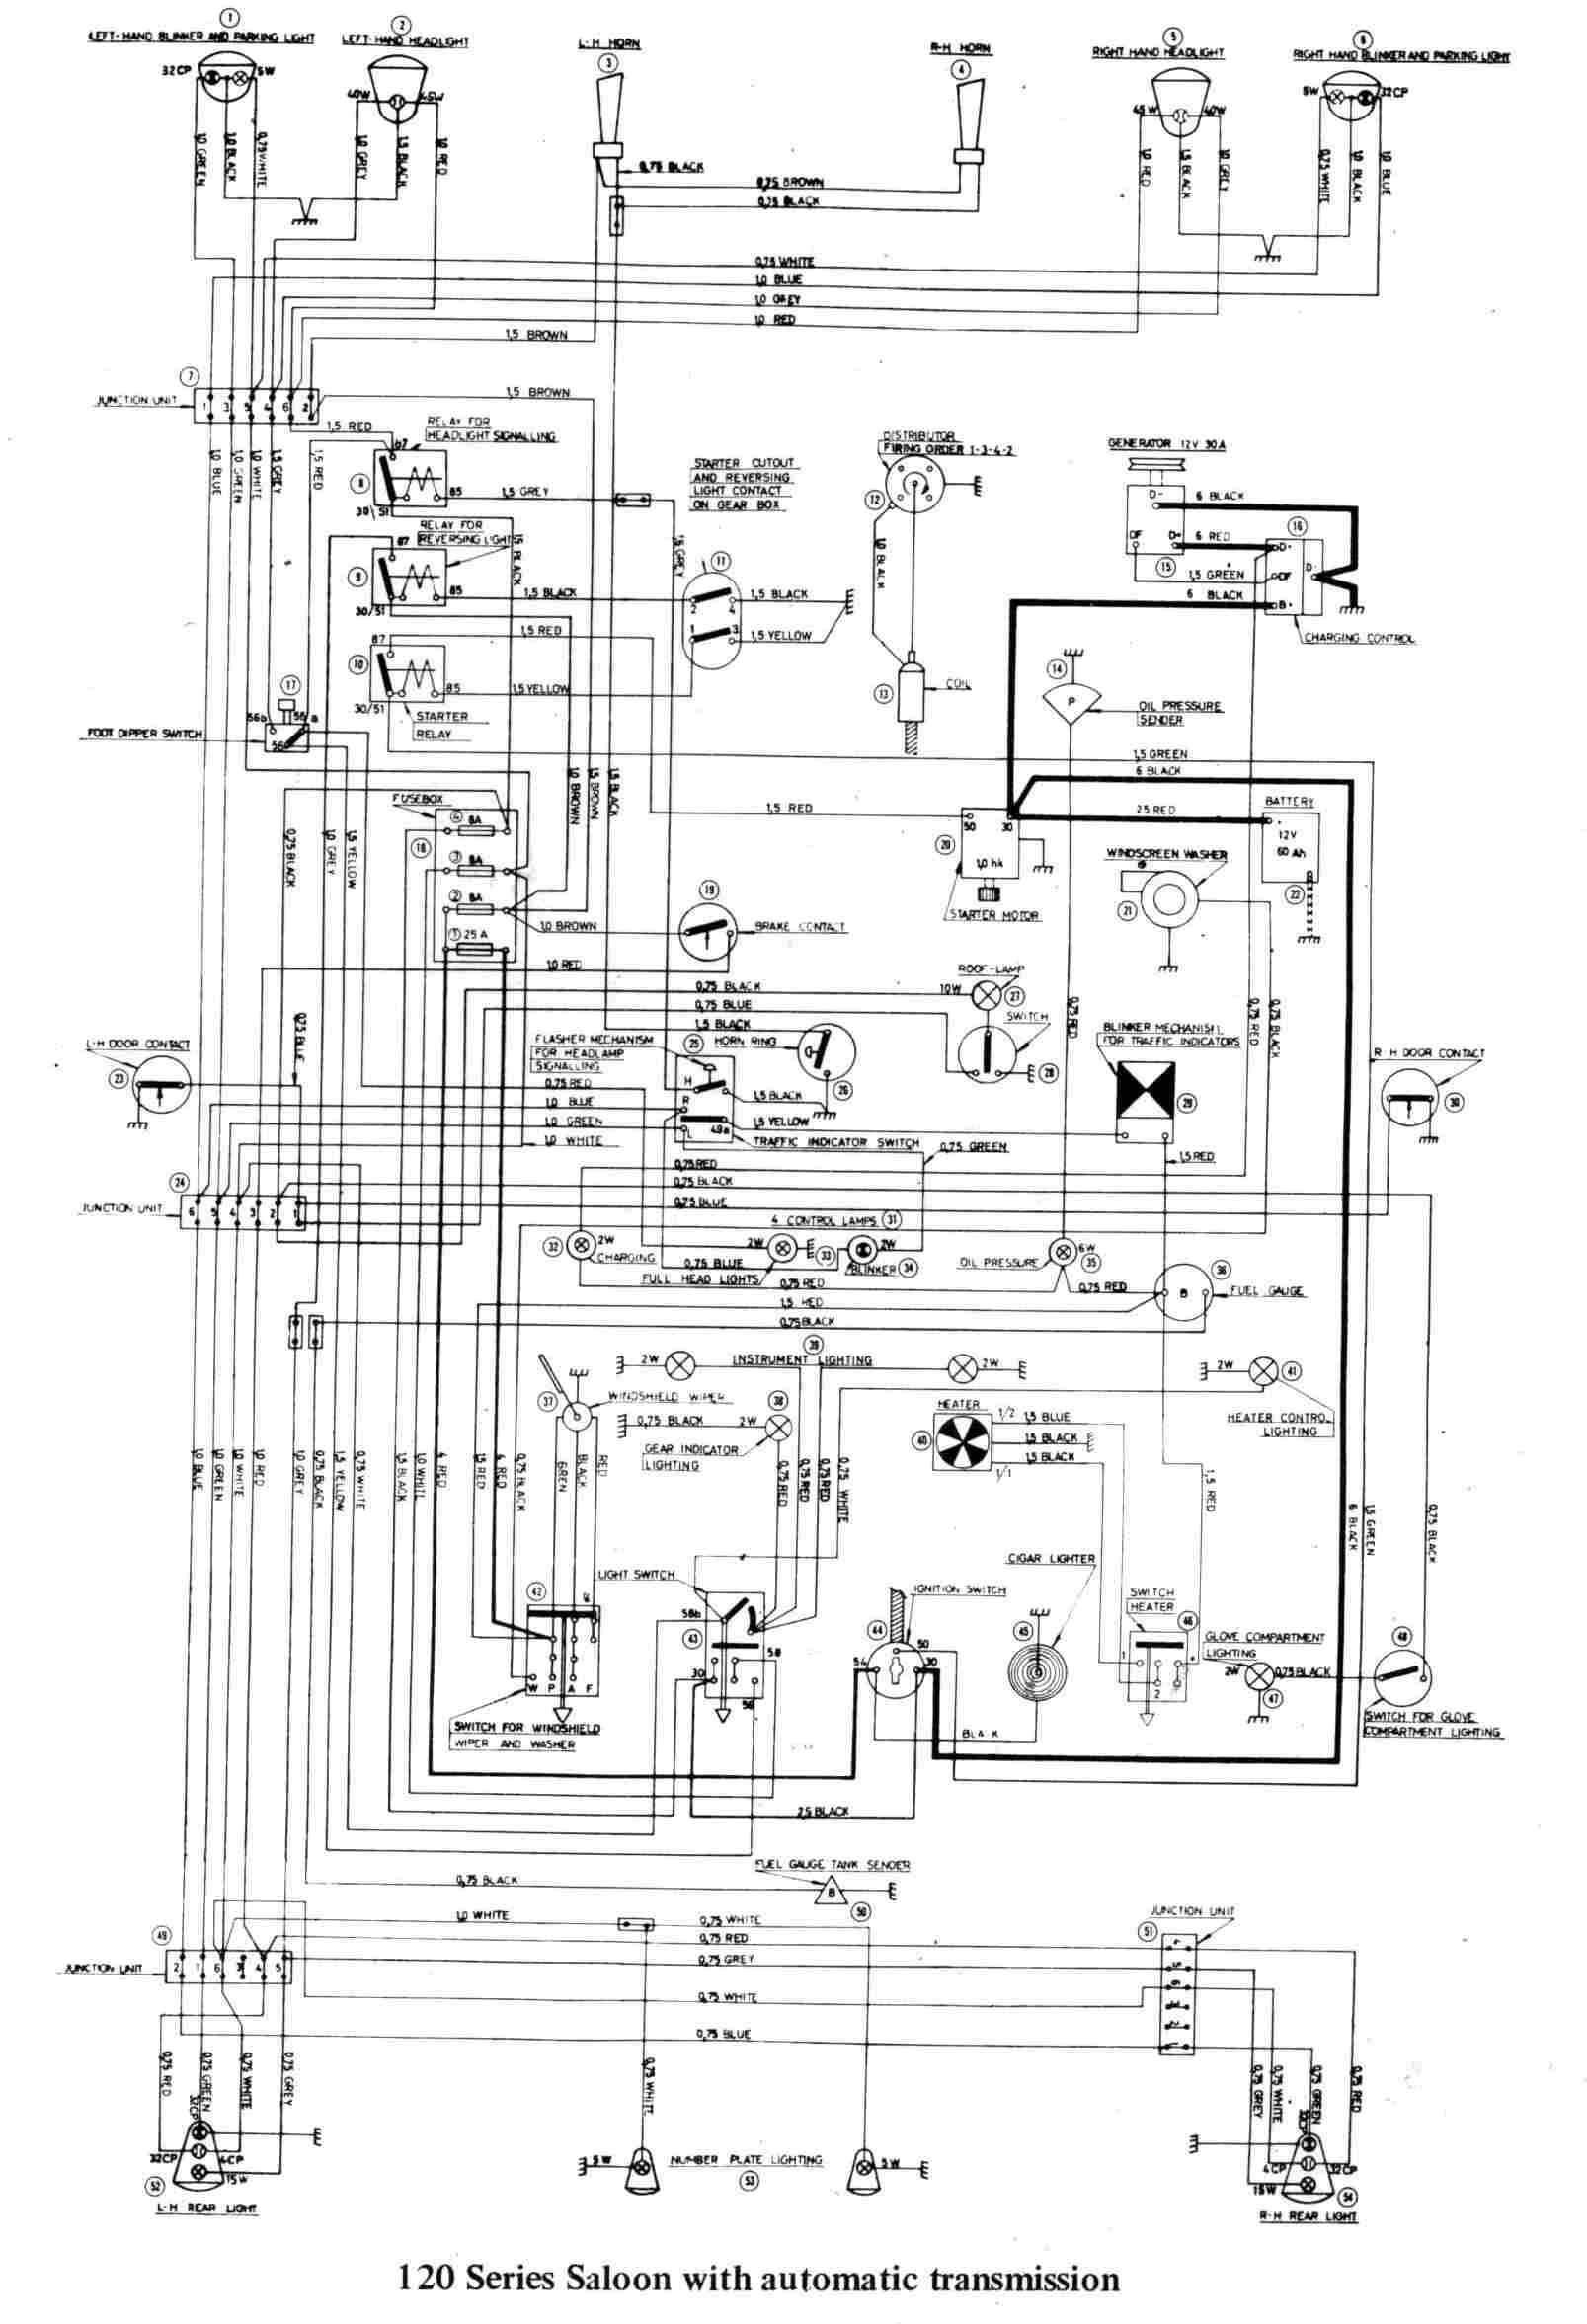 04 neon wiring diagram